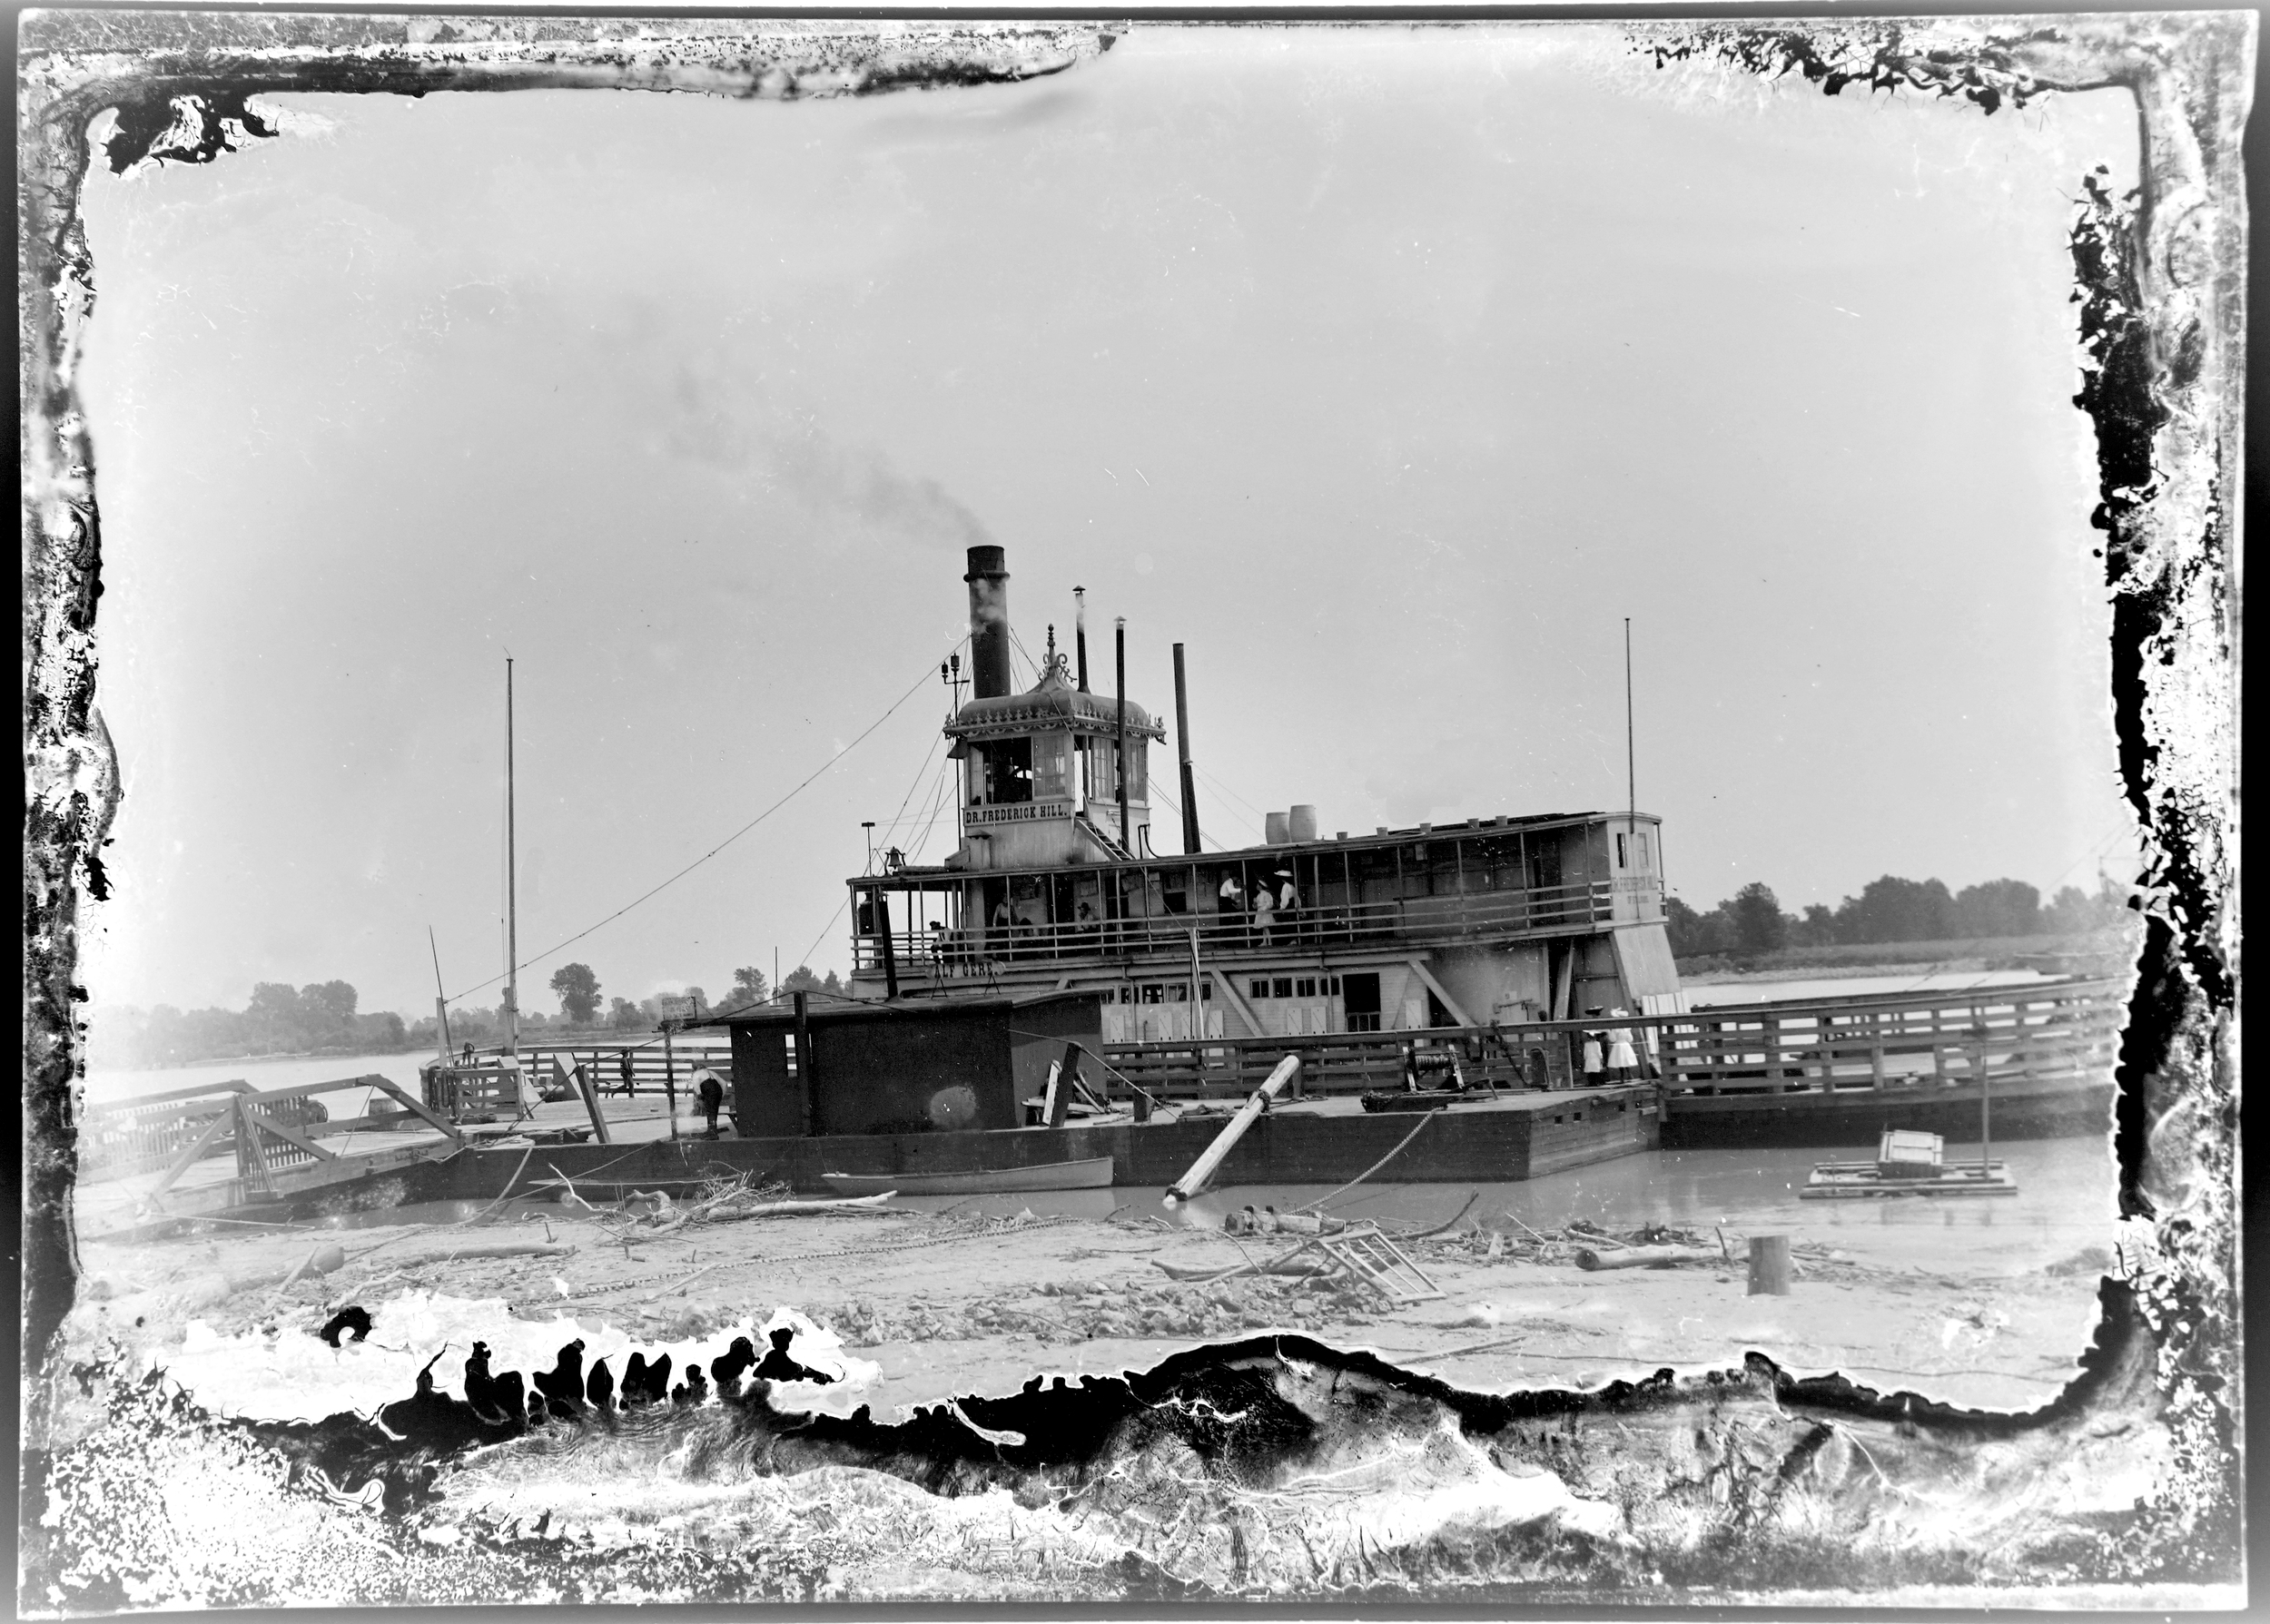 Glass plate photo of a not-so-grand riverboat, the hard-working kind used to transport goods like cotton and cattle.